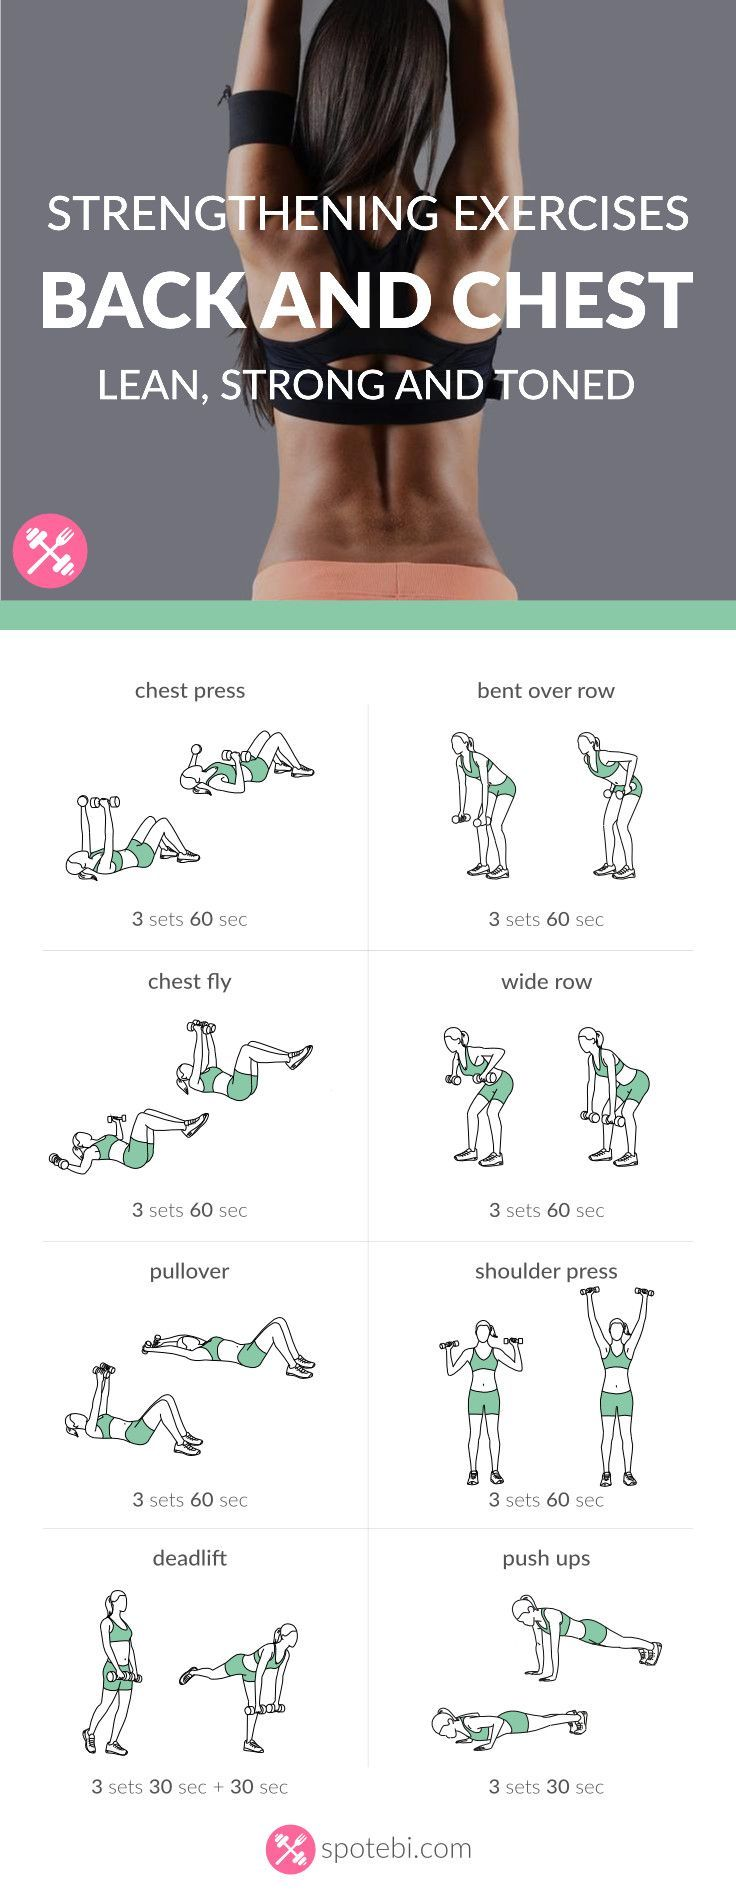 Lift your breasts naturally! Try these chest and back strengthening exercises…